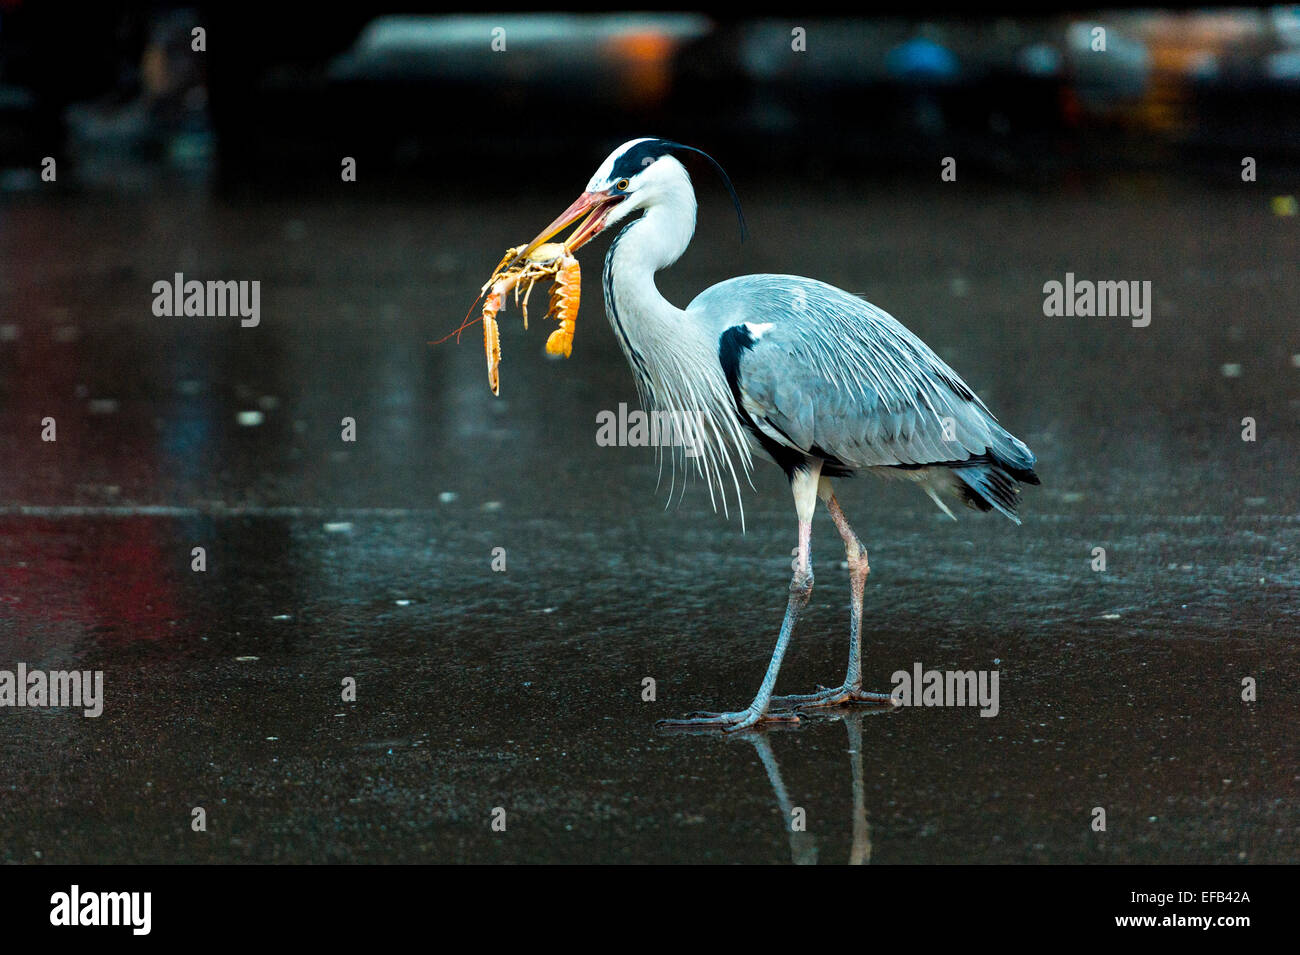 Amsterdam, Netherlands. 29th January, 2015. Blue Herons, usually found near estuaries, lakes and rivers, scavenge - Stock Image